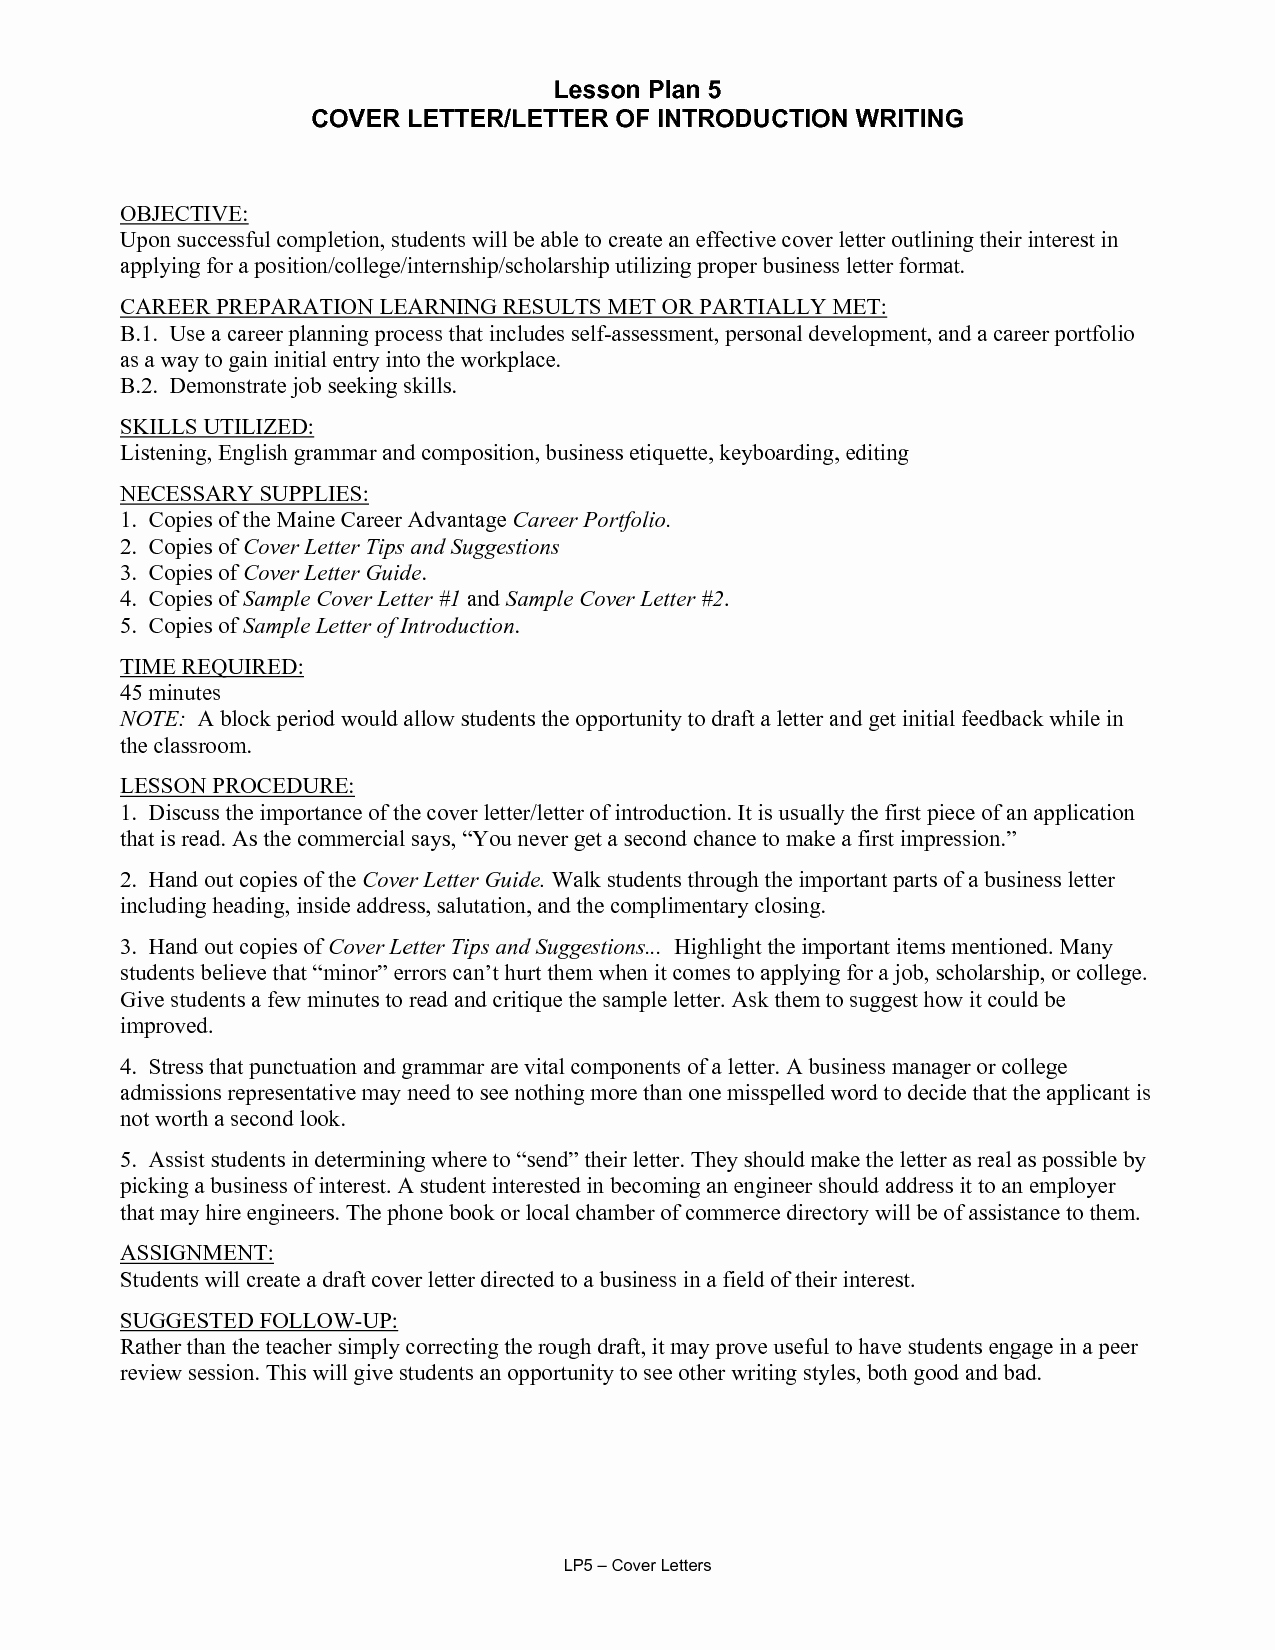 sample resume introduction paragraph